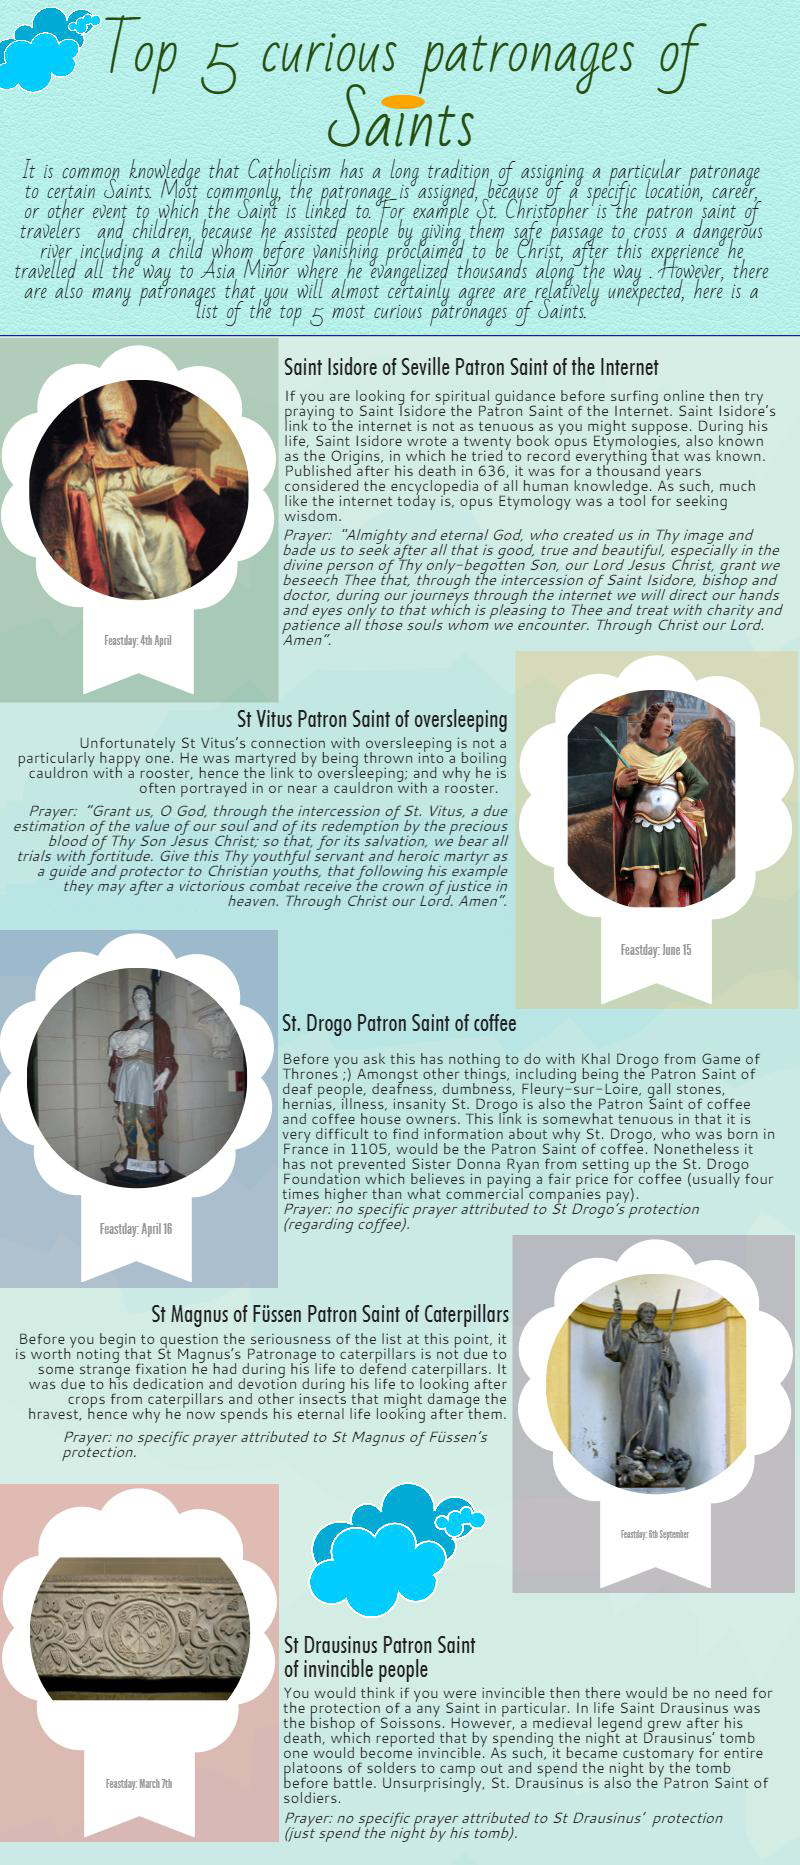 Top 5 curious patronages of saints